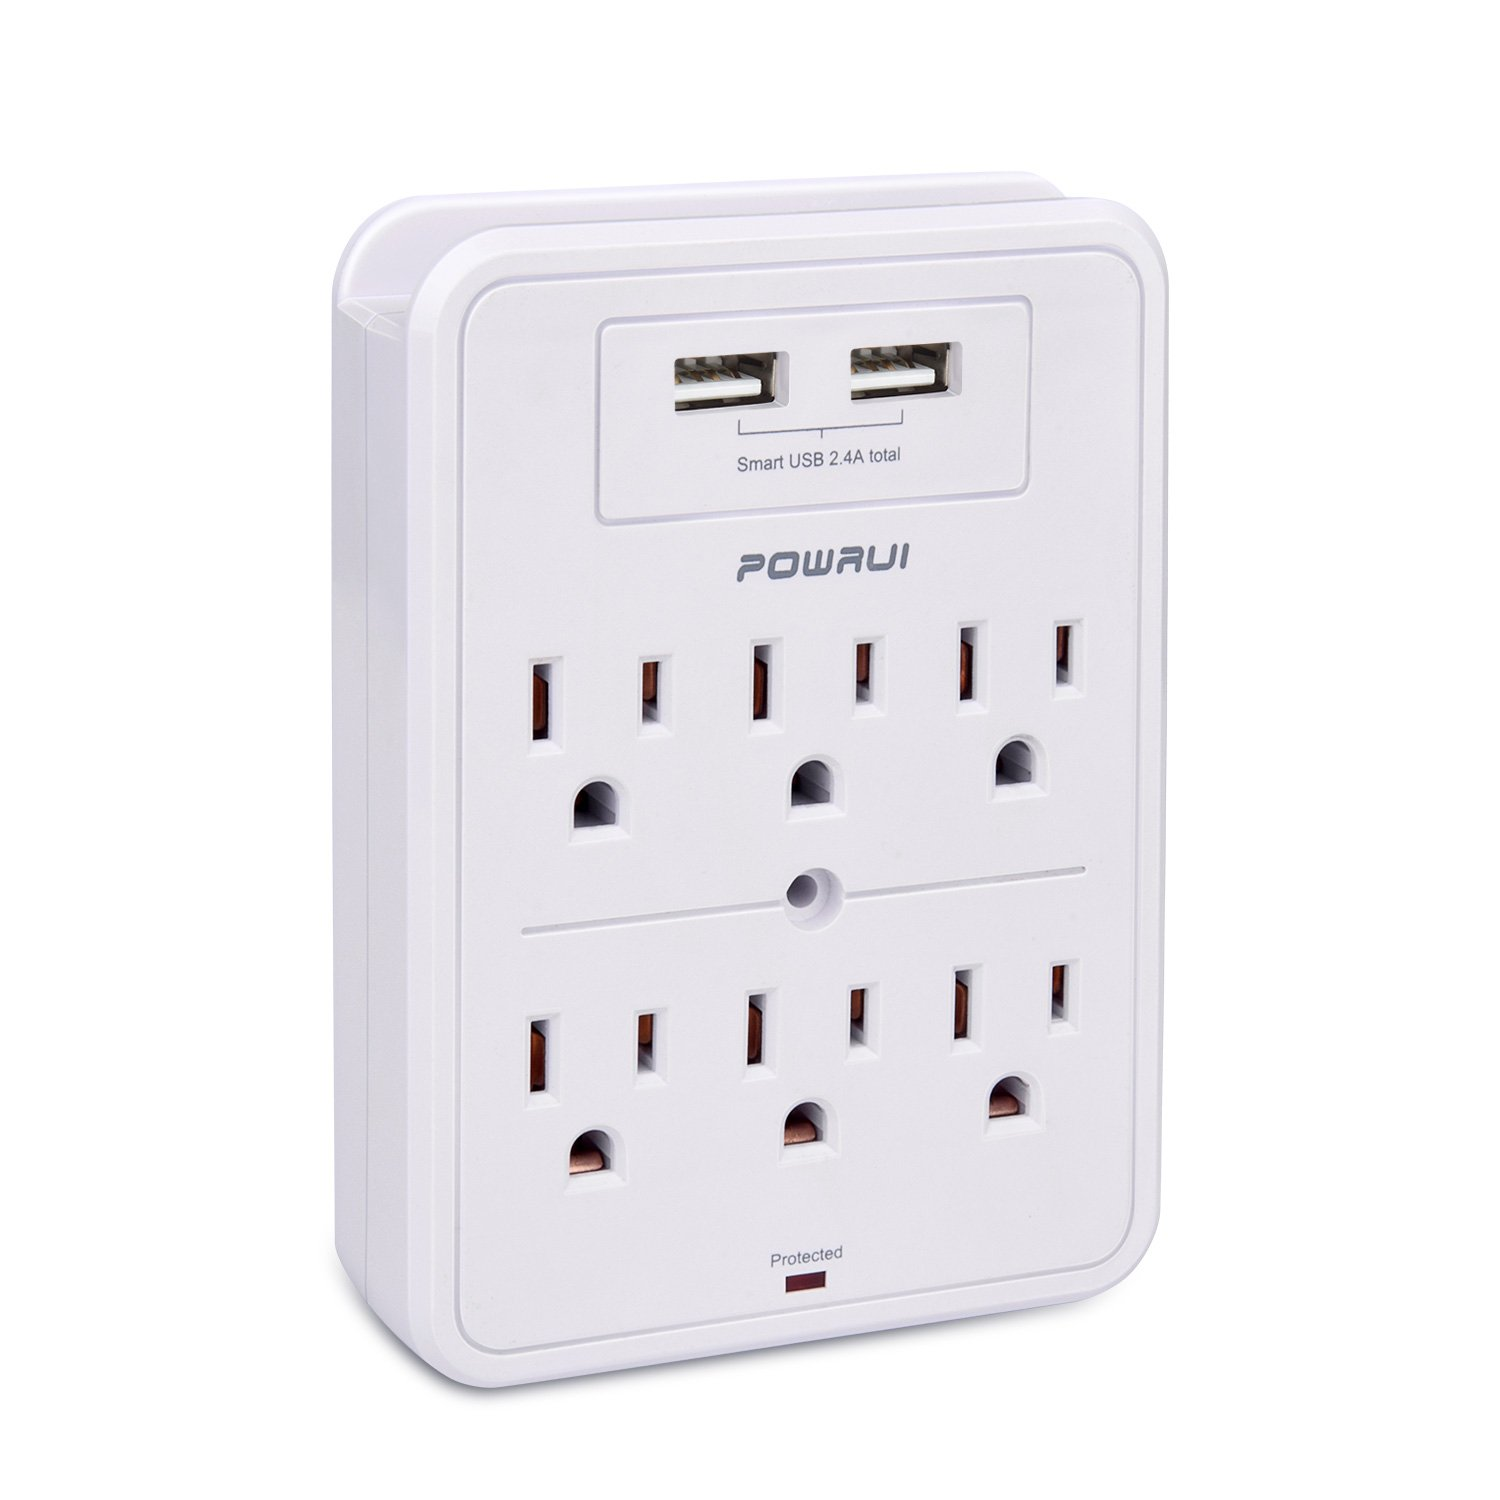 Surge Protector, POWRUI USB Wall Charger with 2 USB charging ports(smart 2.4A Total), 6-Outlet Extender and Top Phone Holder for iPhone iPad and more, White, ETL Certified